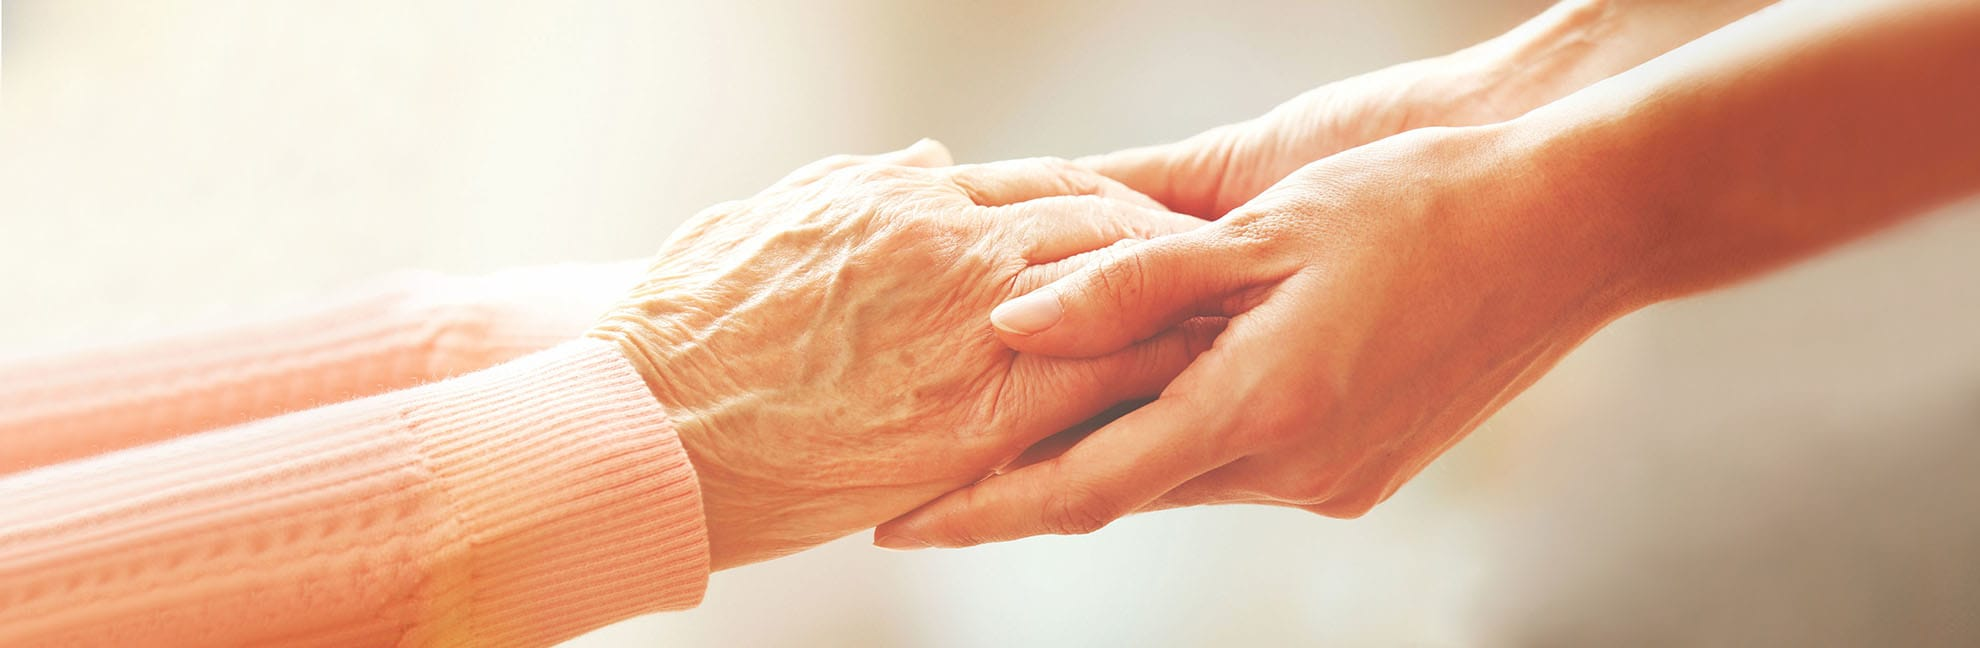 personal care in-home senior care services